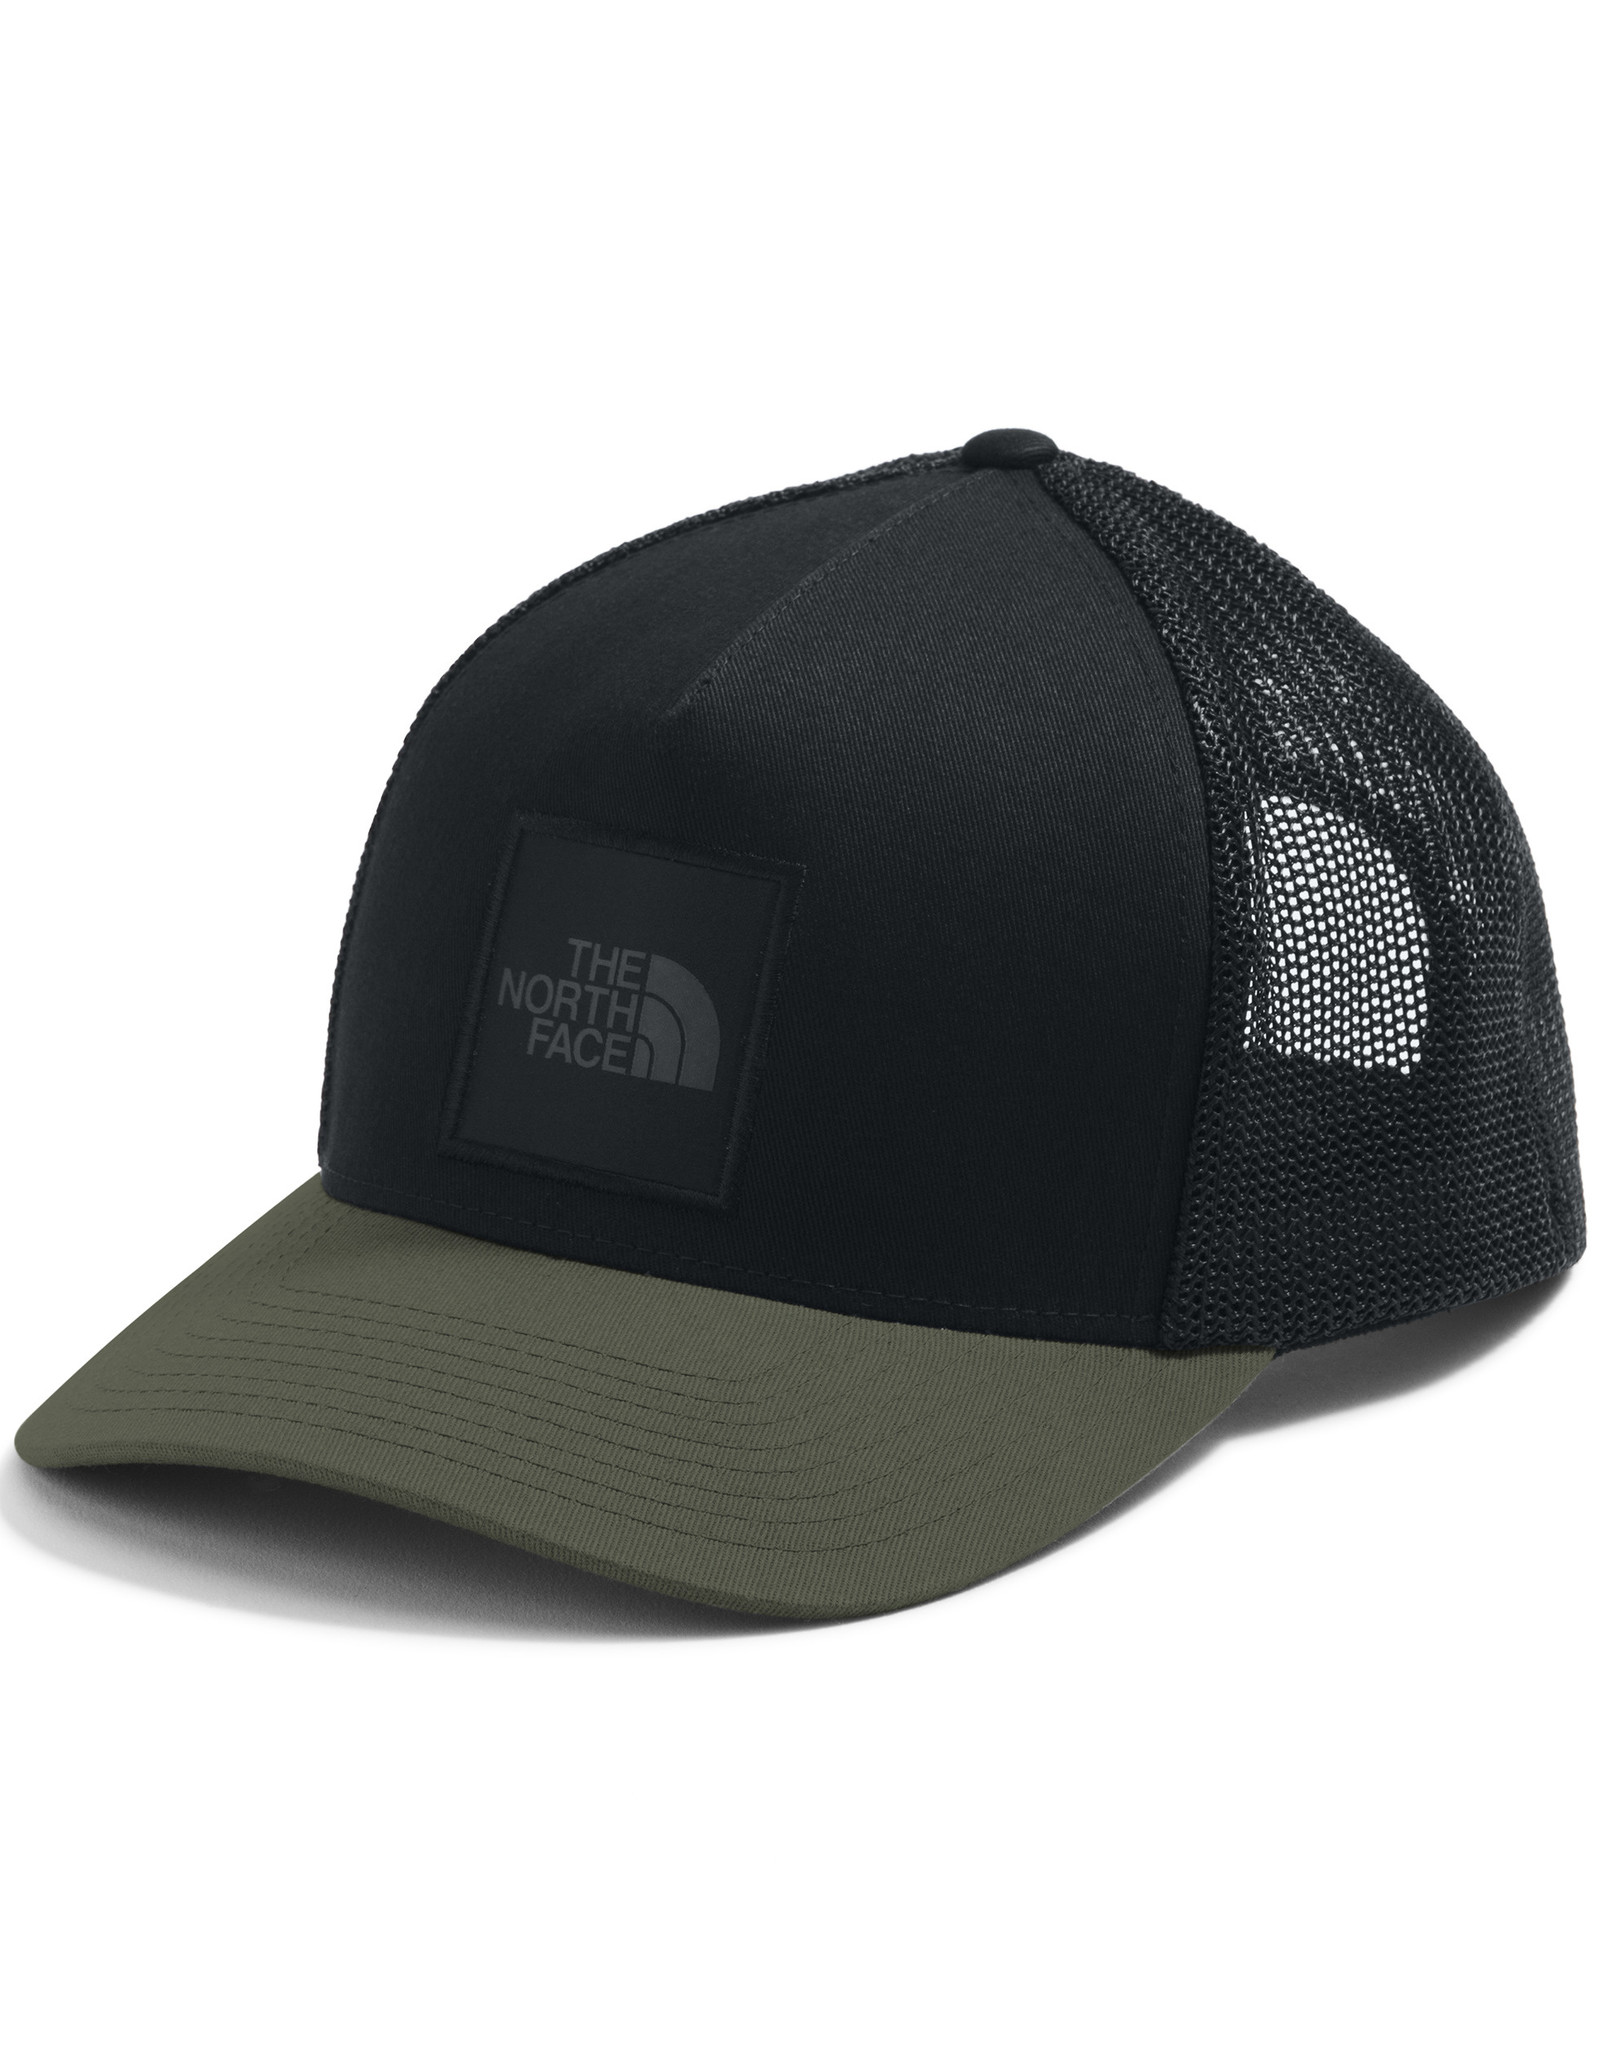 The North Face The North Face Keep It Structured Trucker - S2020